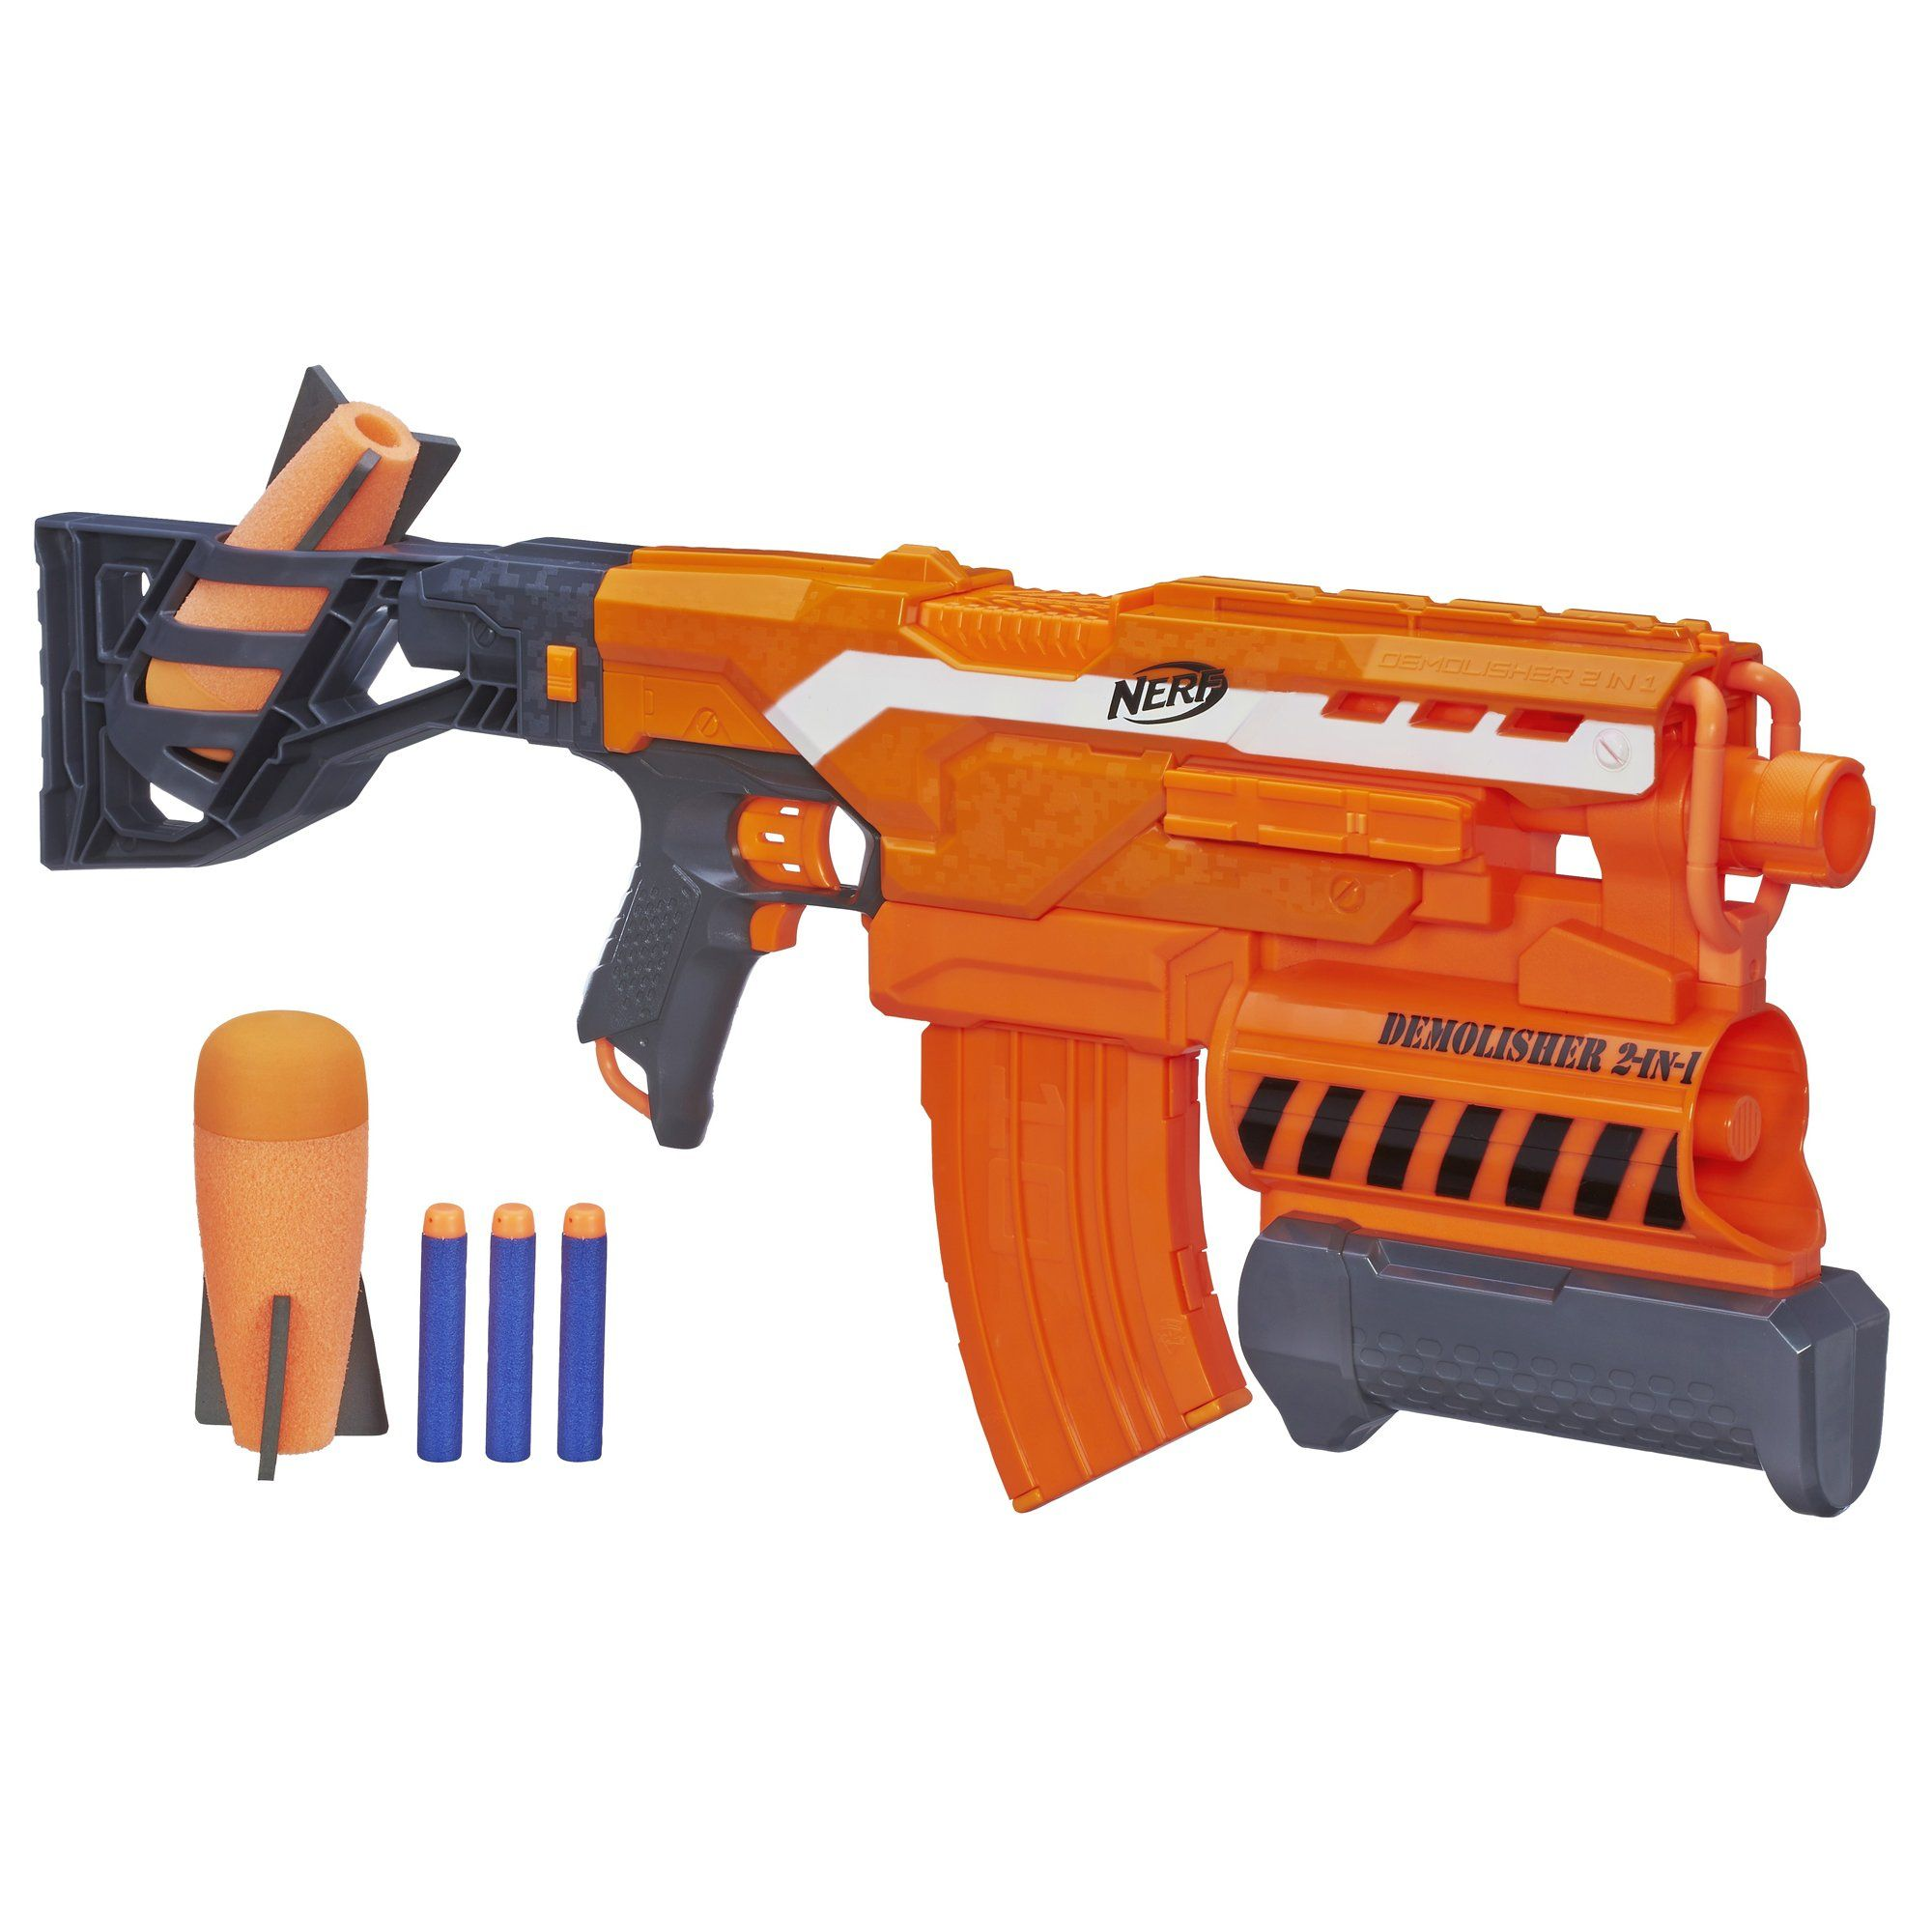 Amazoncom Nerf N Strike Elite Demolisher 2 In 1 Blaster Christmas 2014Kids Christmas